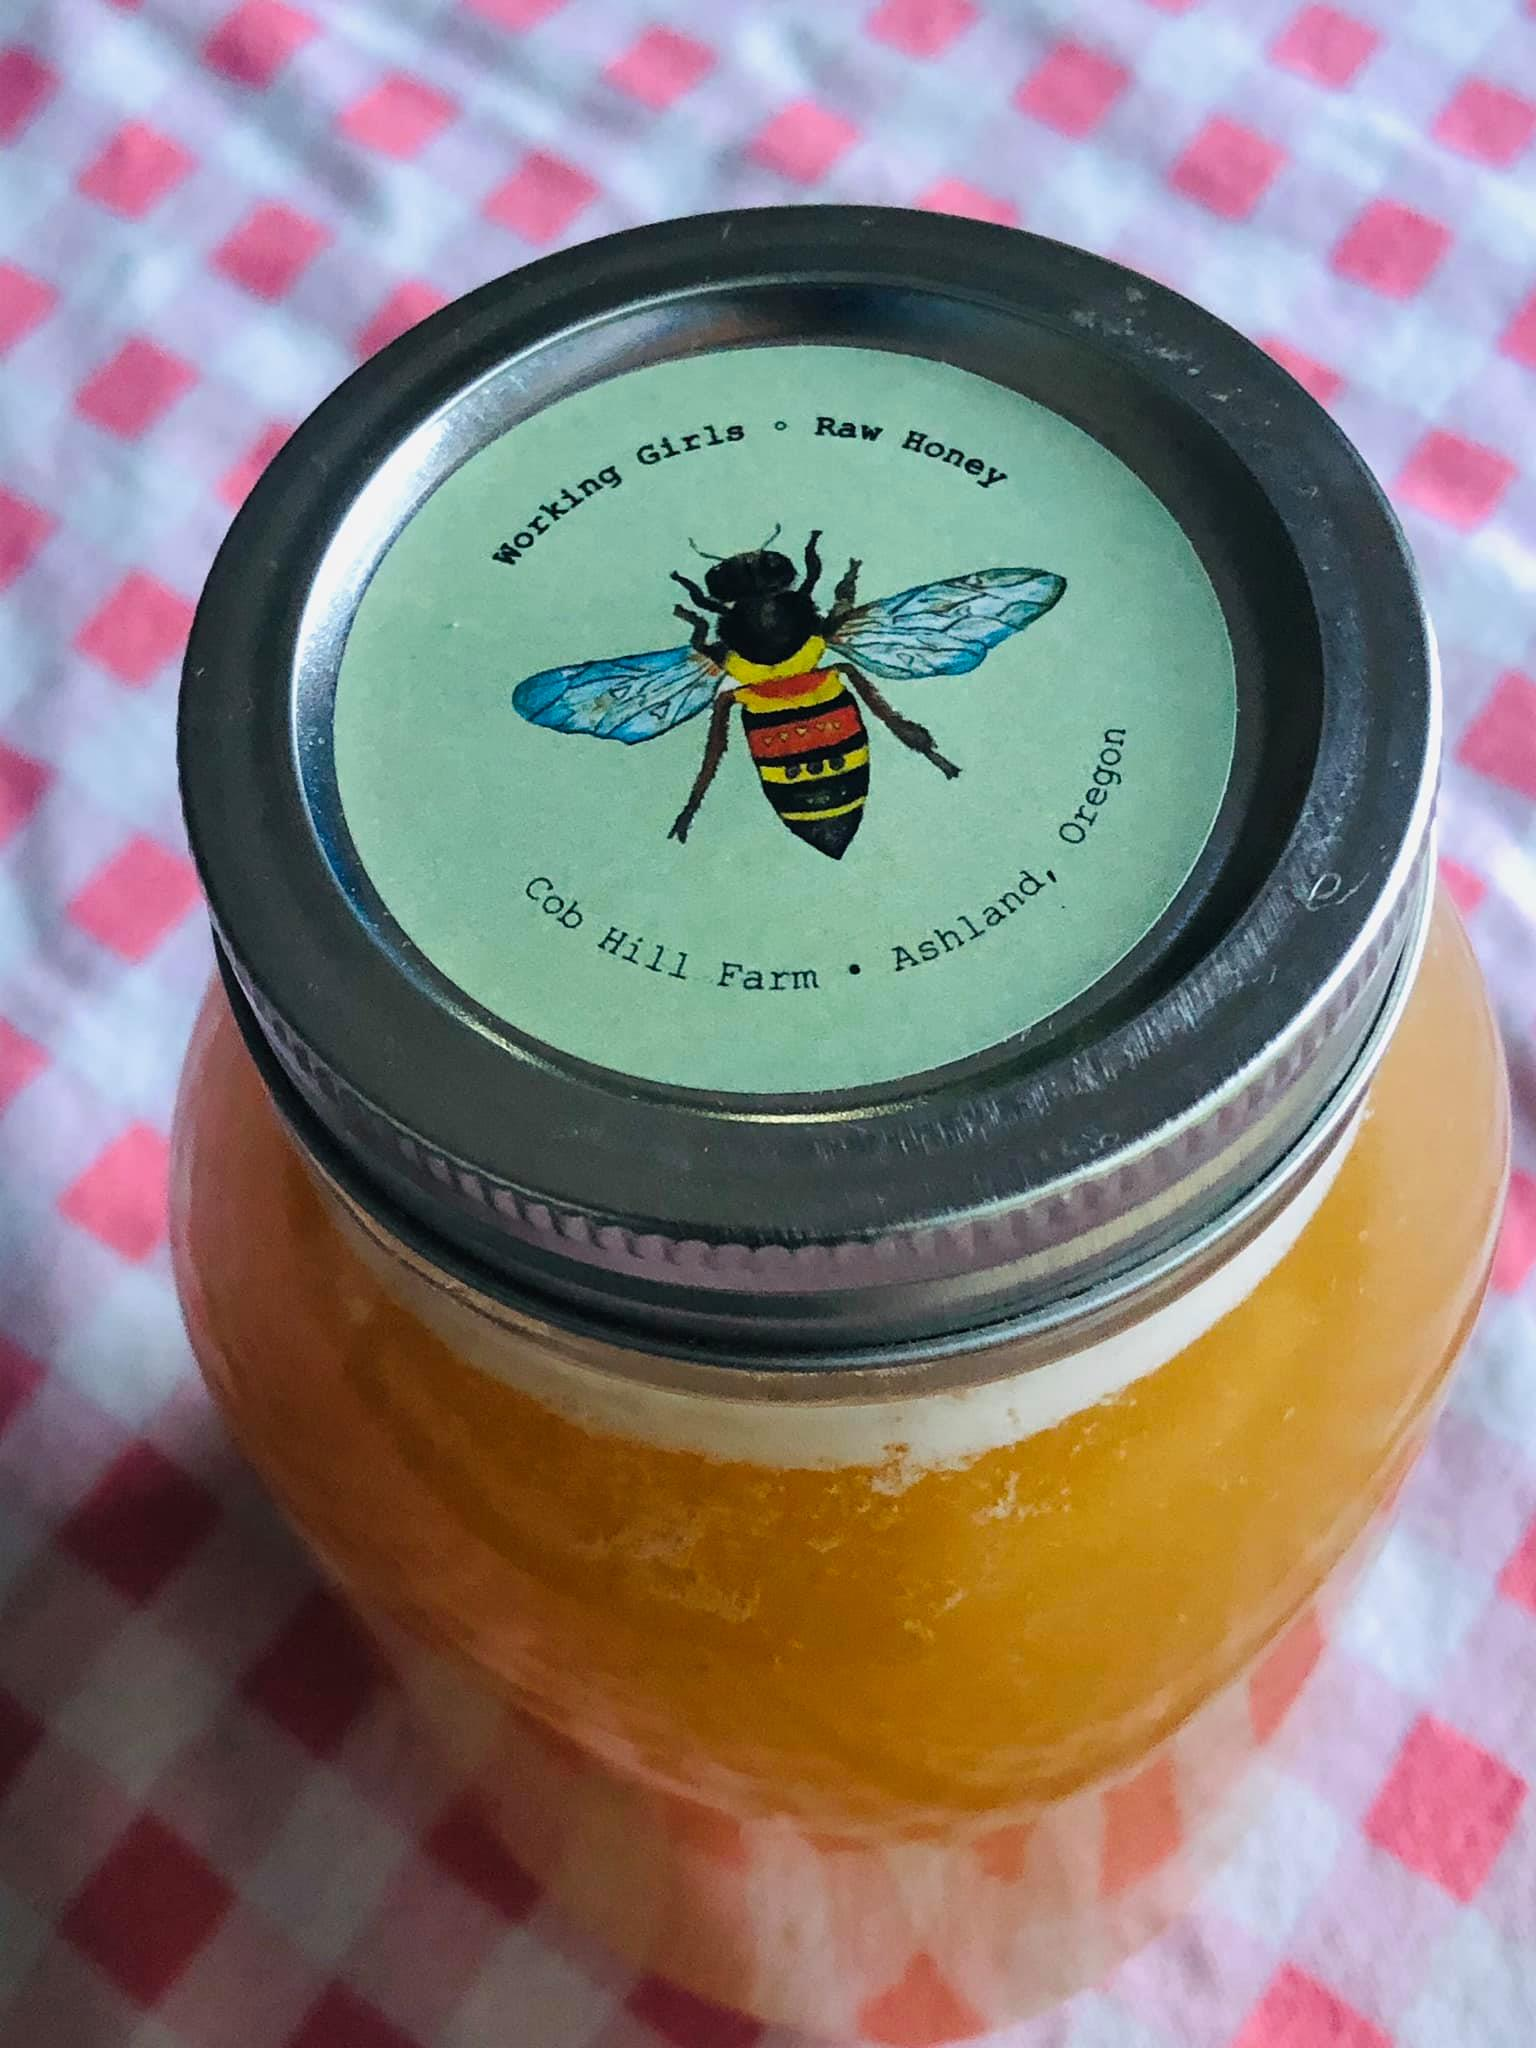 Glyphosate in honey, even organic honey, is a growing problem, according to several scientific studies. Photo of a jar of Working Girls Raw Honey with original art by Jennifer Margulis